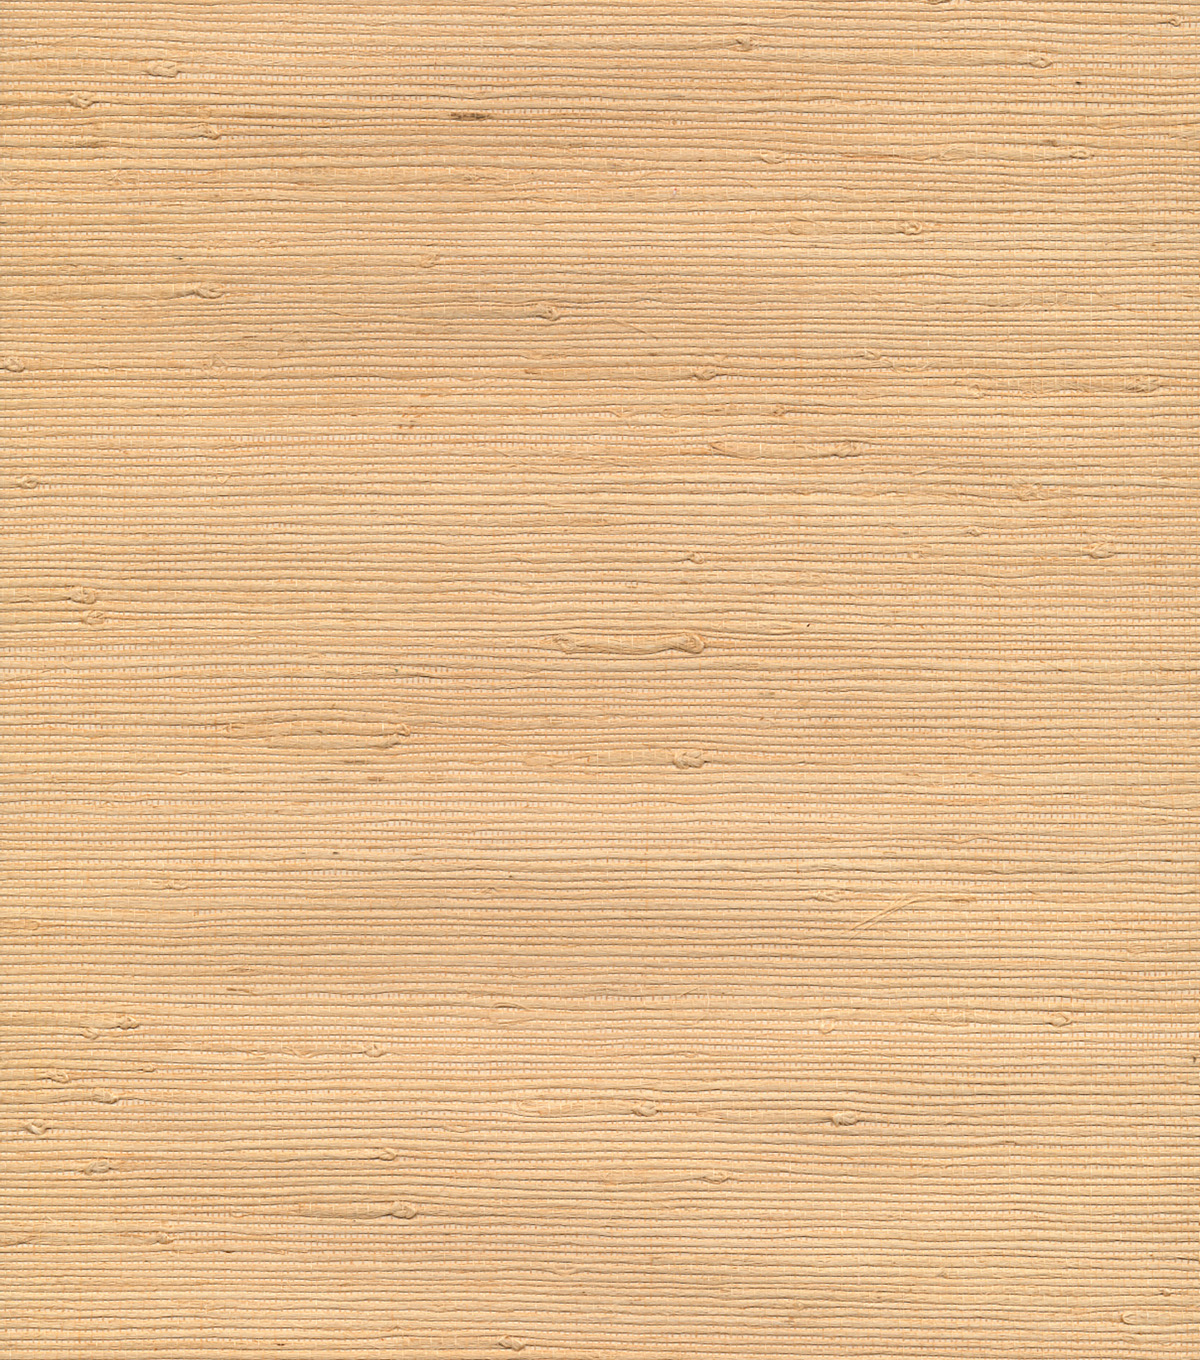 Hotaru Peach Grasscloth Wallpaper Sample